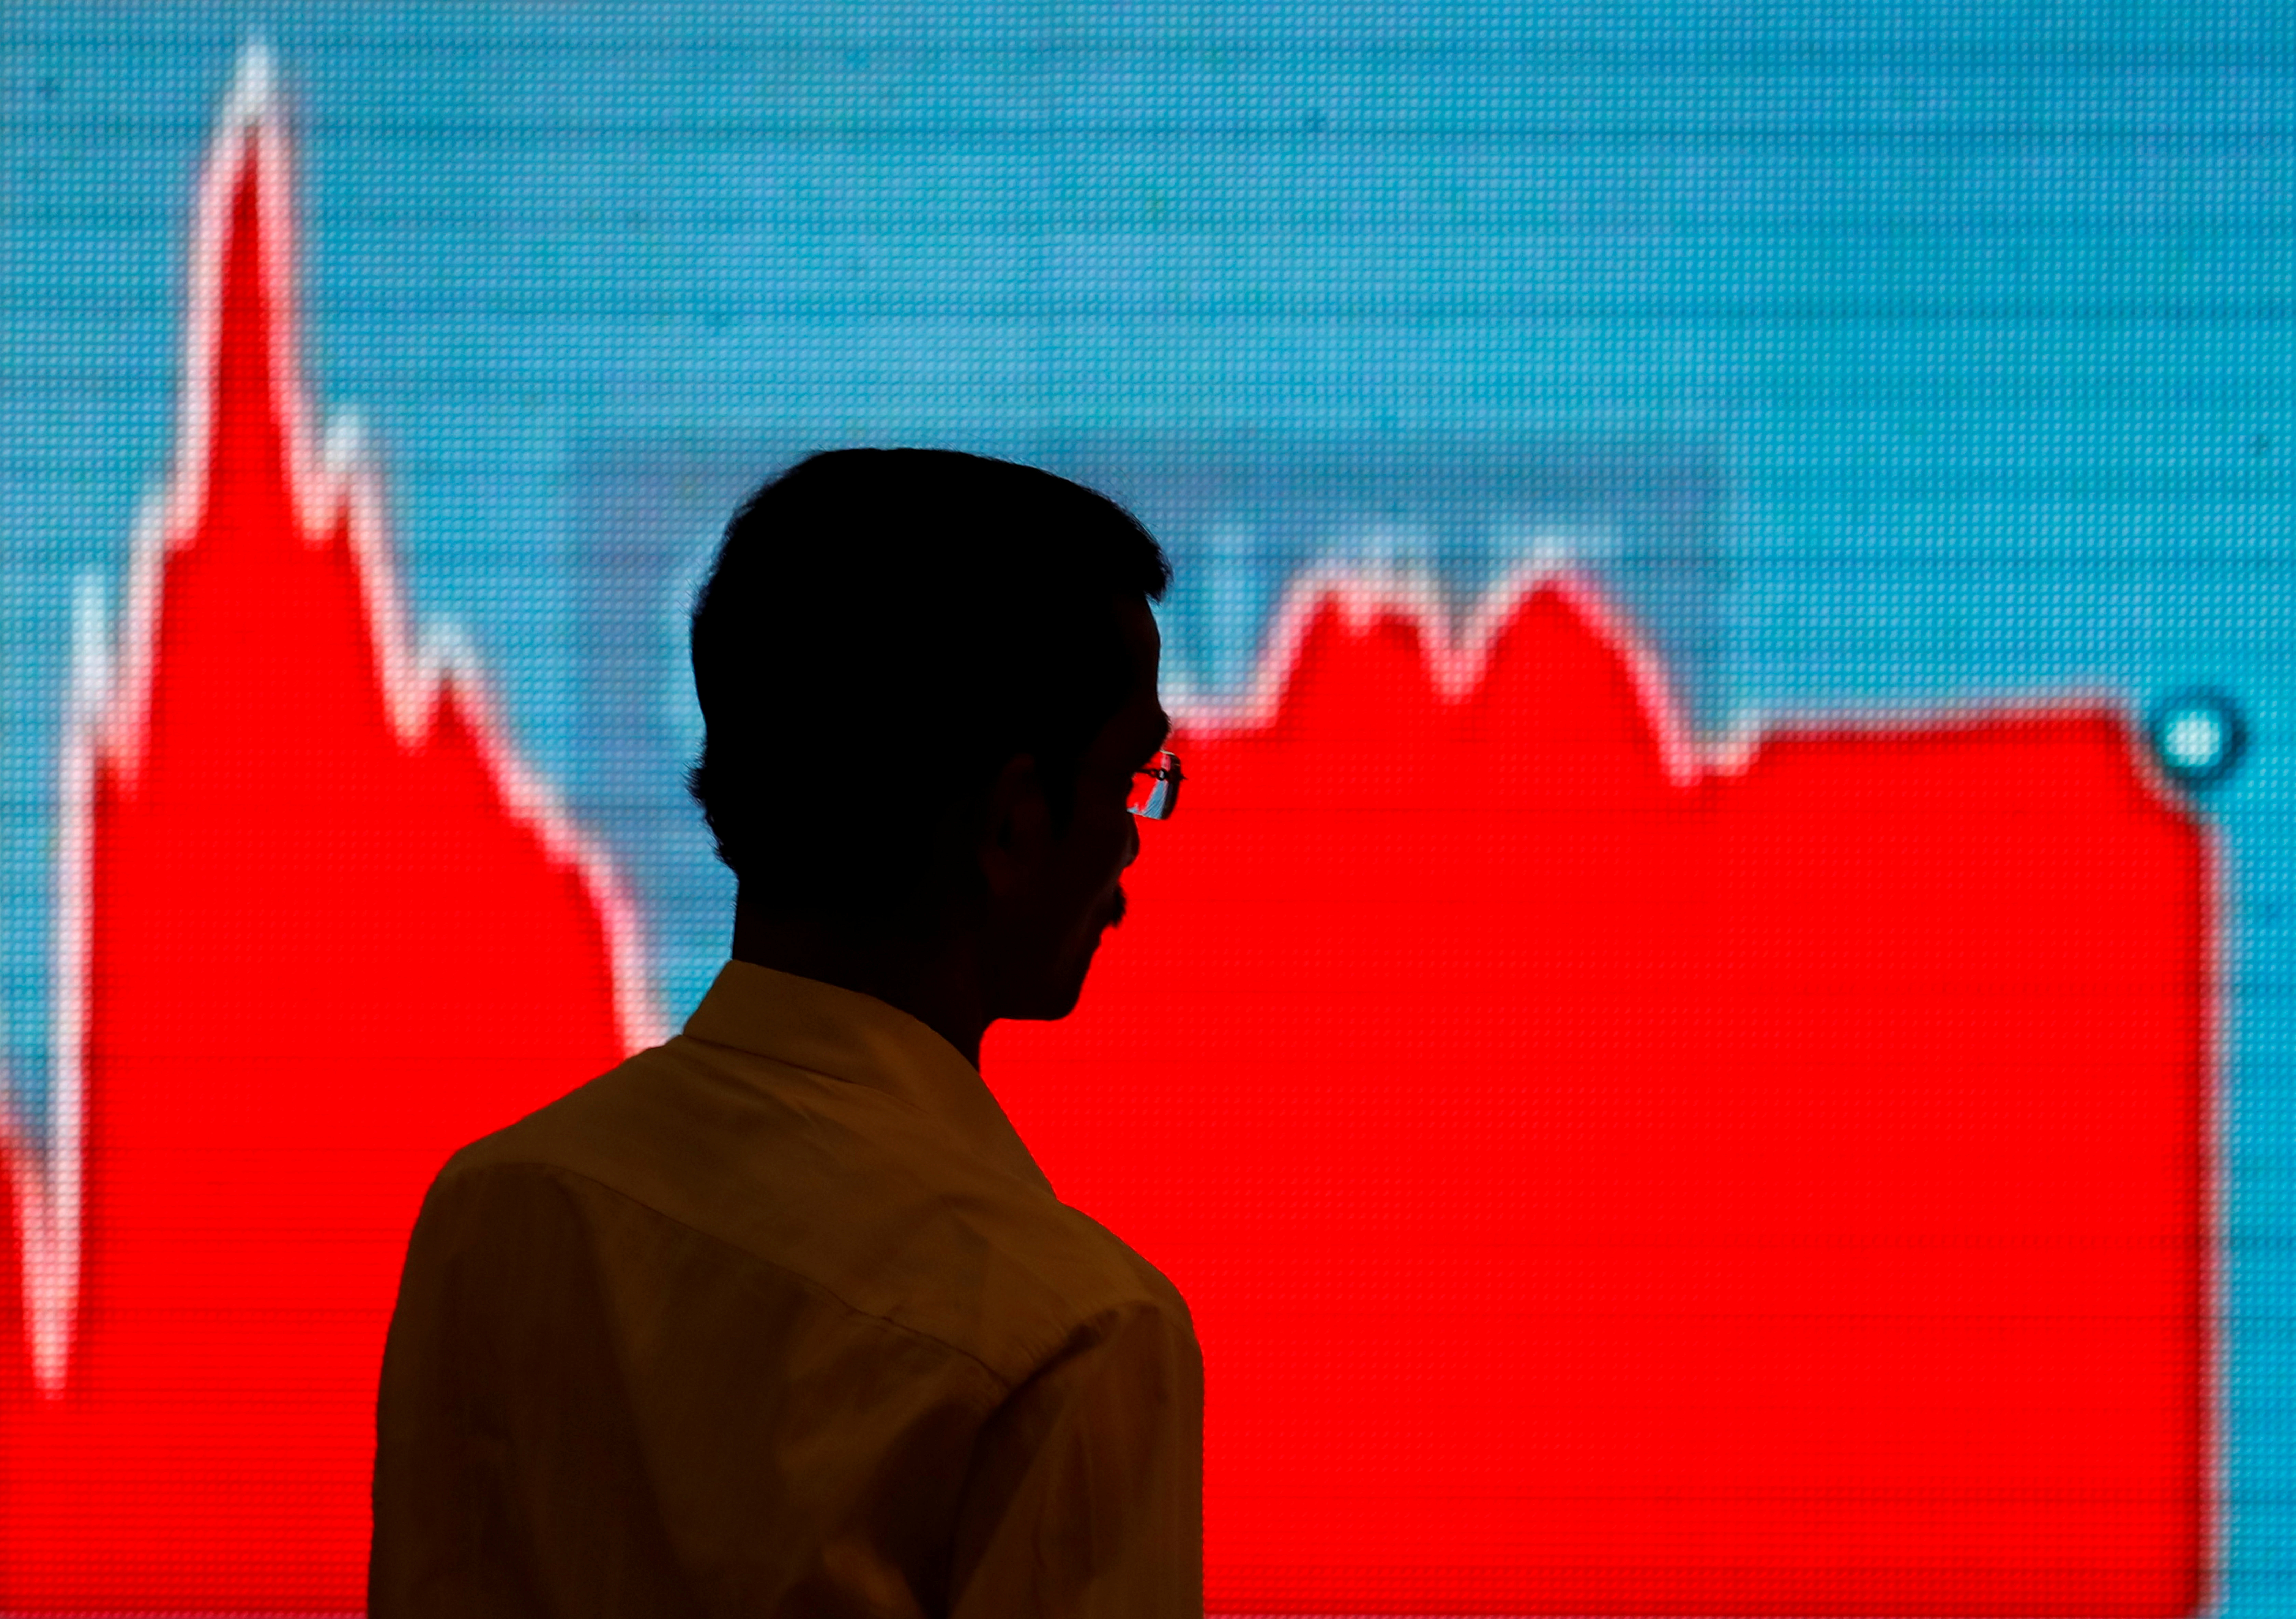 A man walks past a screen displaying news of markets update inside the Bombay Stock Exchange (BSE) building in Mumbai, India, February 6, 2018. REUTERS/Danish Siddiqui/Files